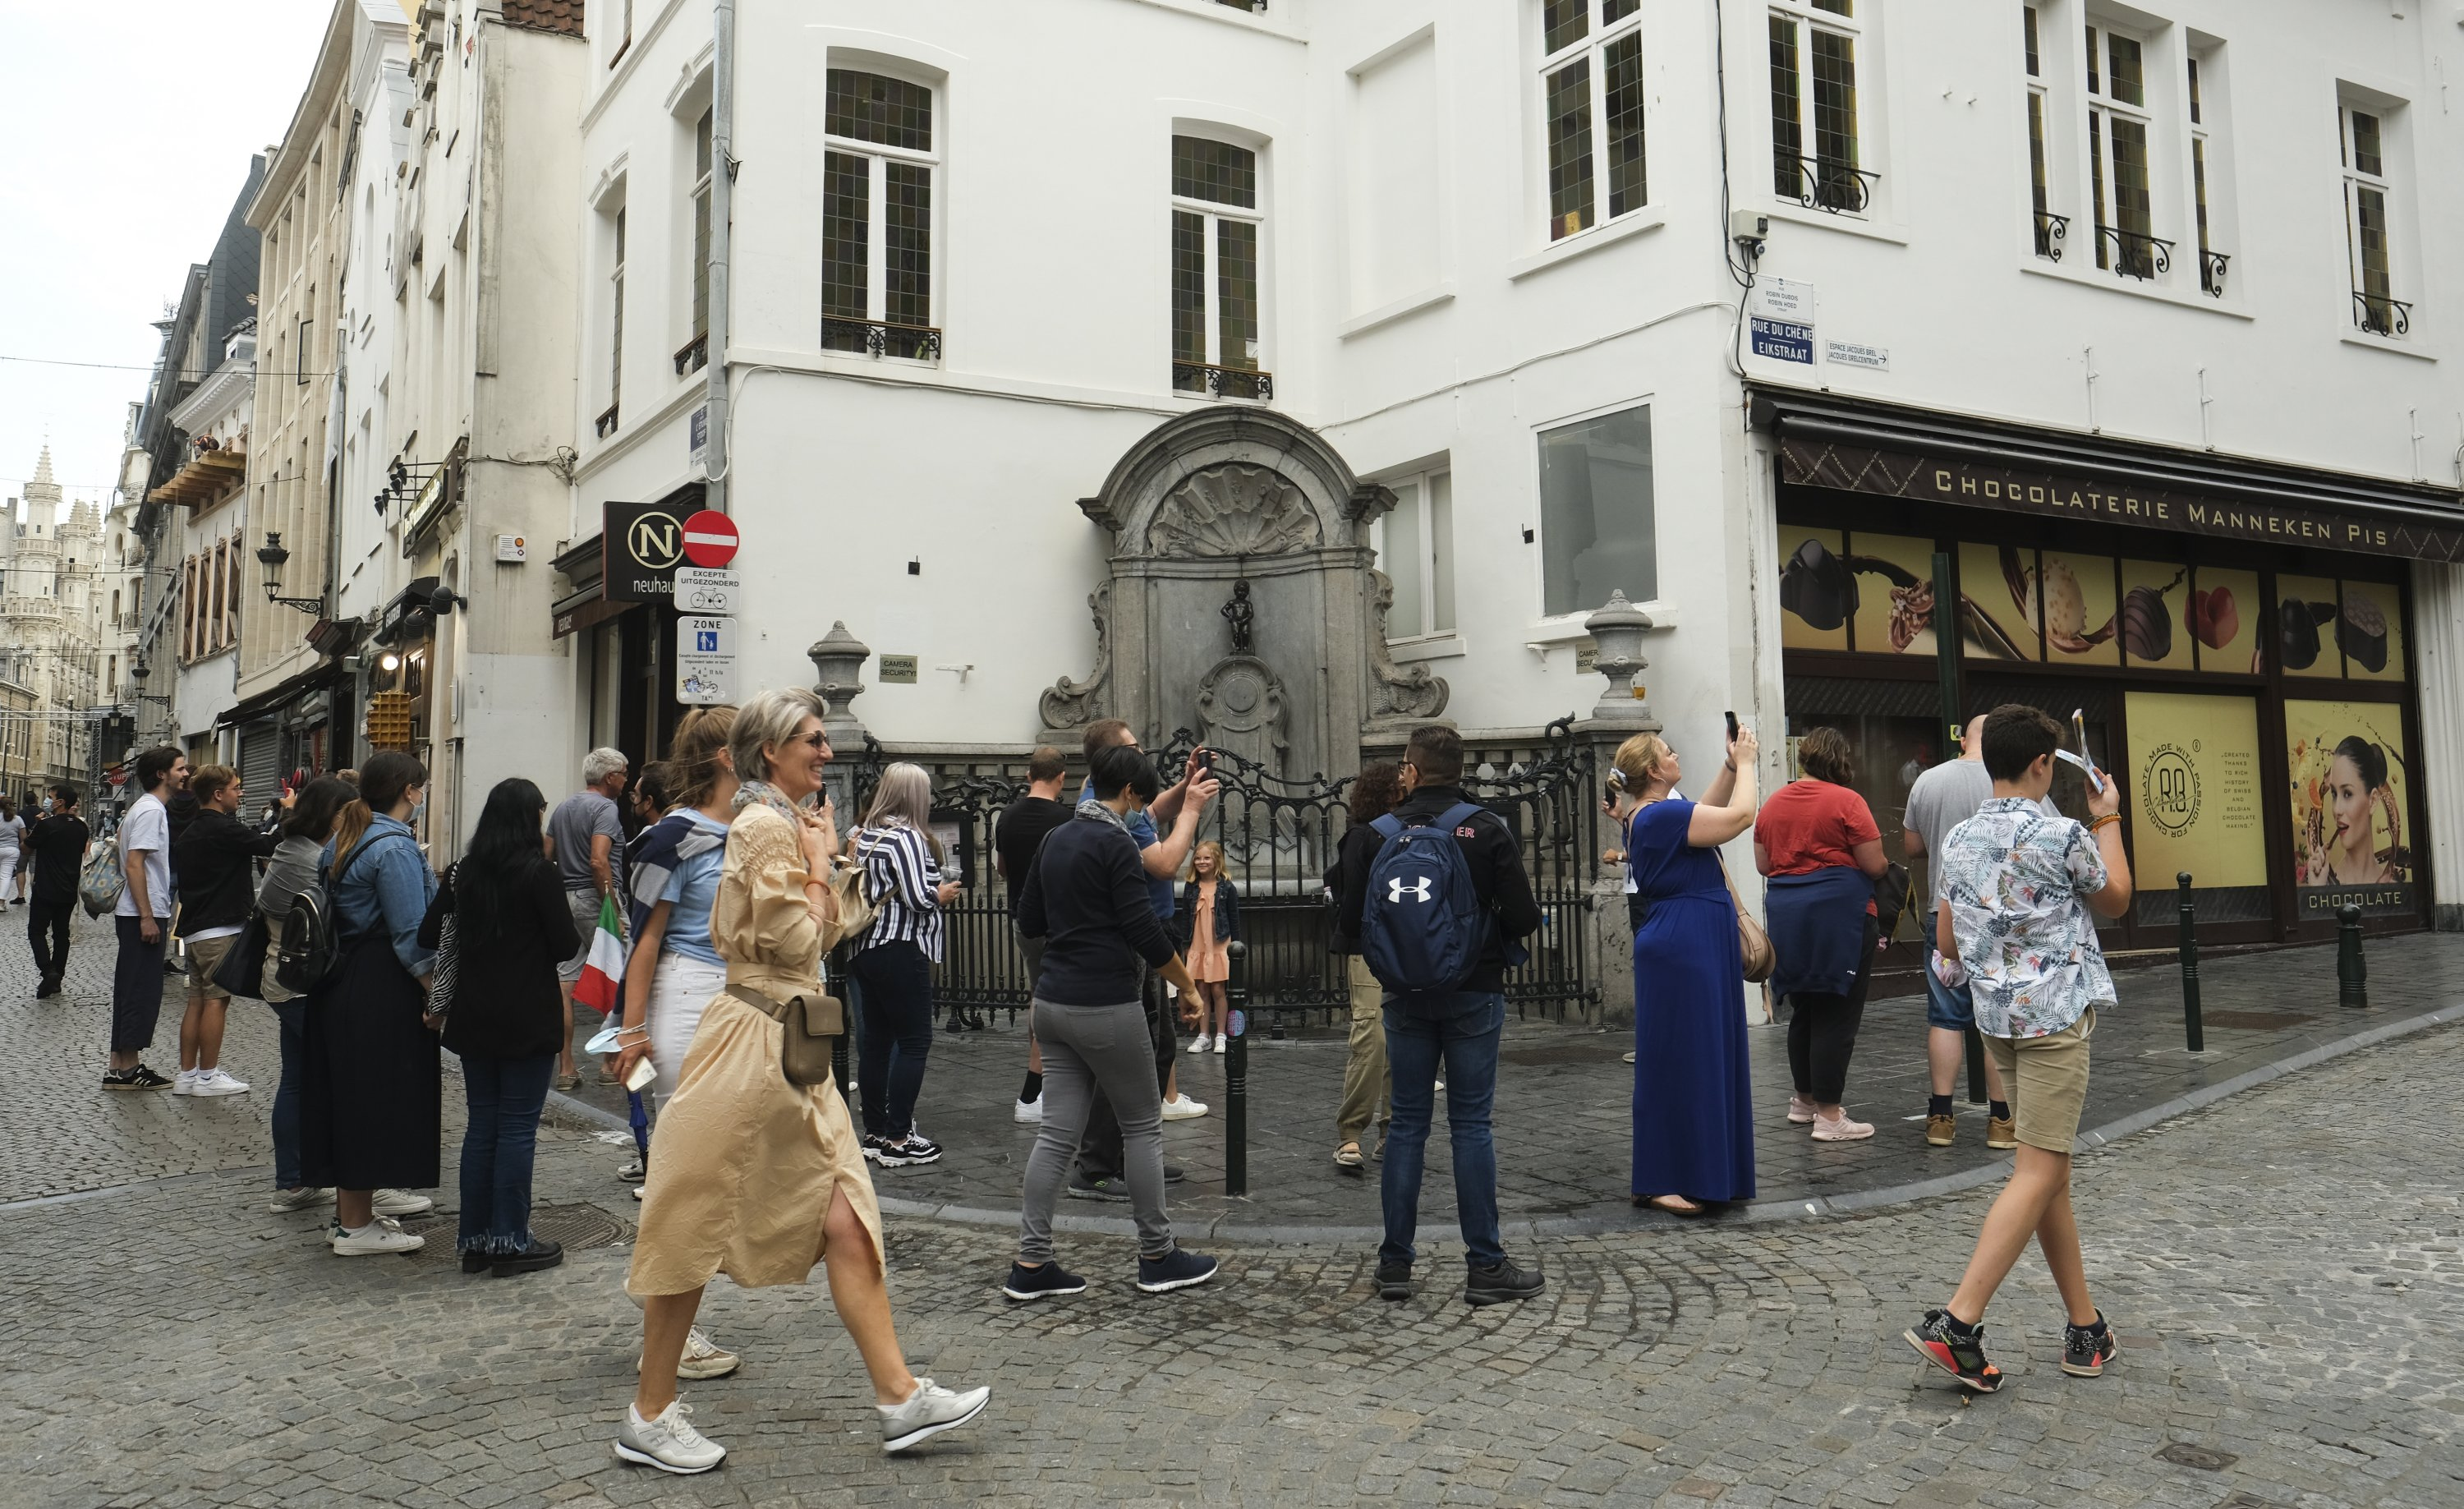 The Manneken-pis statue area looks busy like it was prior to the COVID-19 crisis in Brussels, Belgium, Aug. 2021. (EPA Photo)